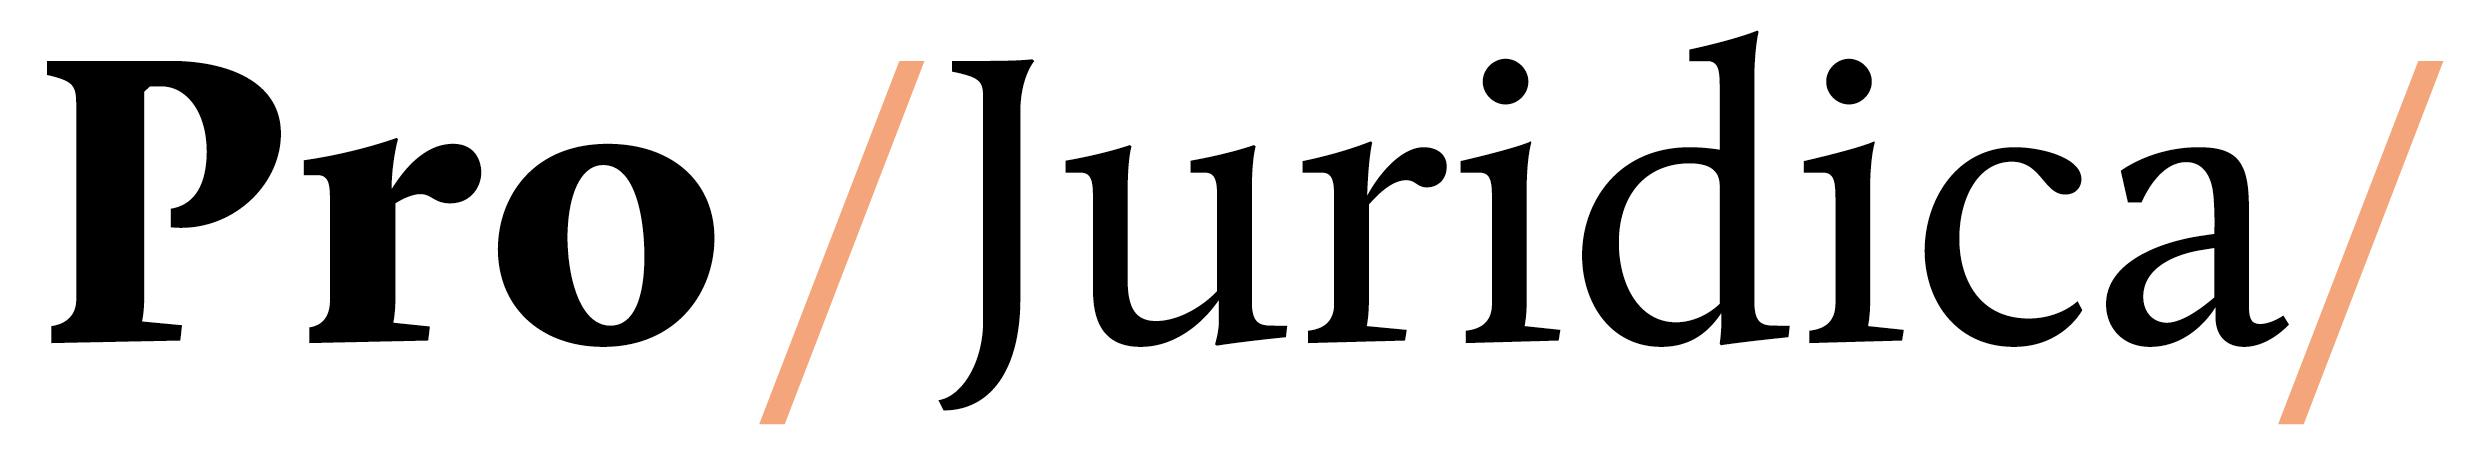 Pro Juridica Attorneys-at-Law